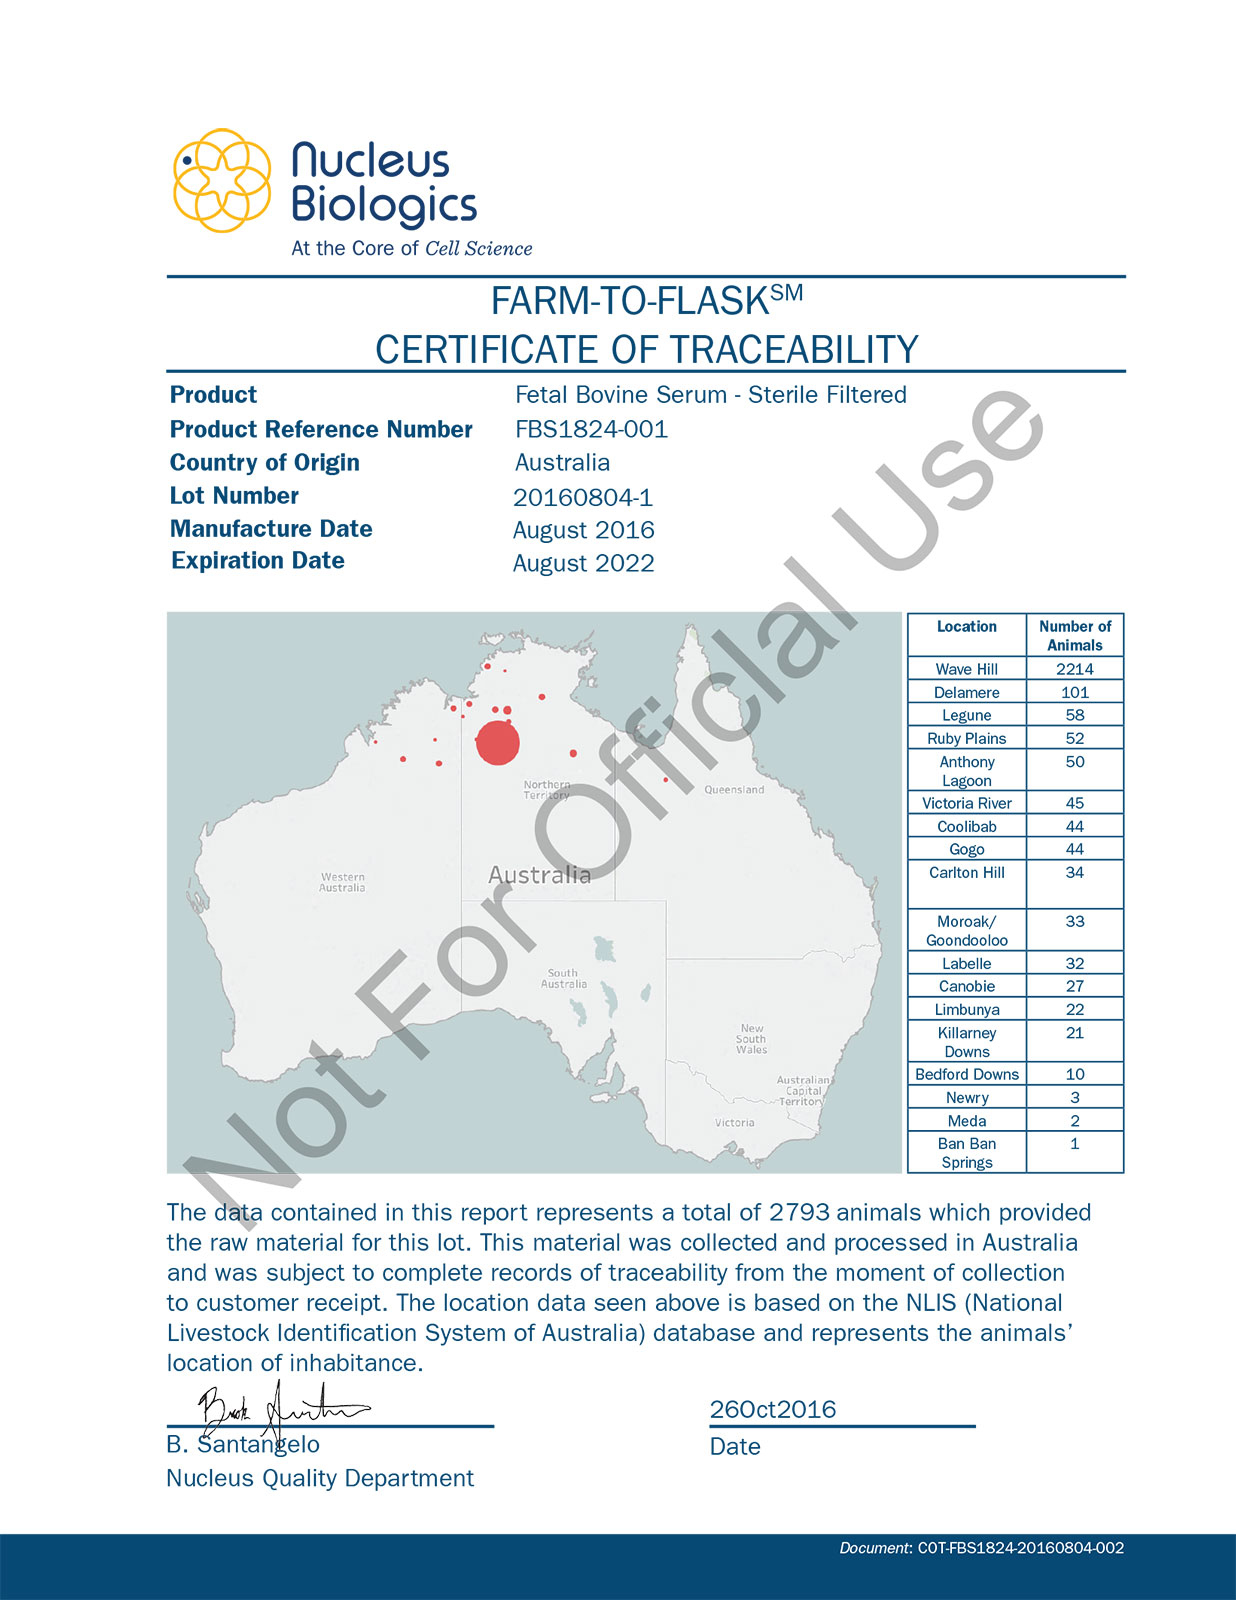 Sample Certificate of Traceability